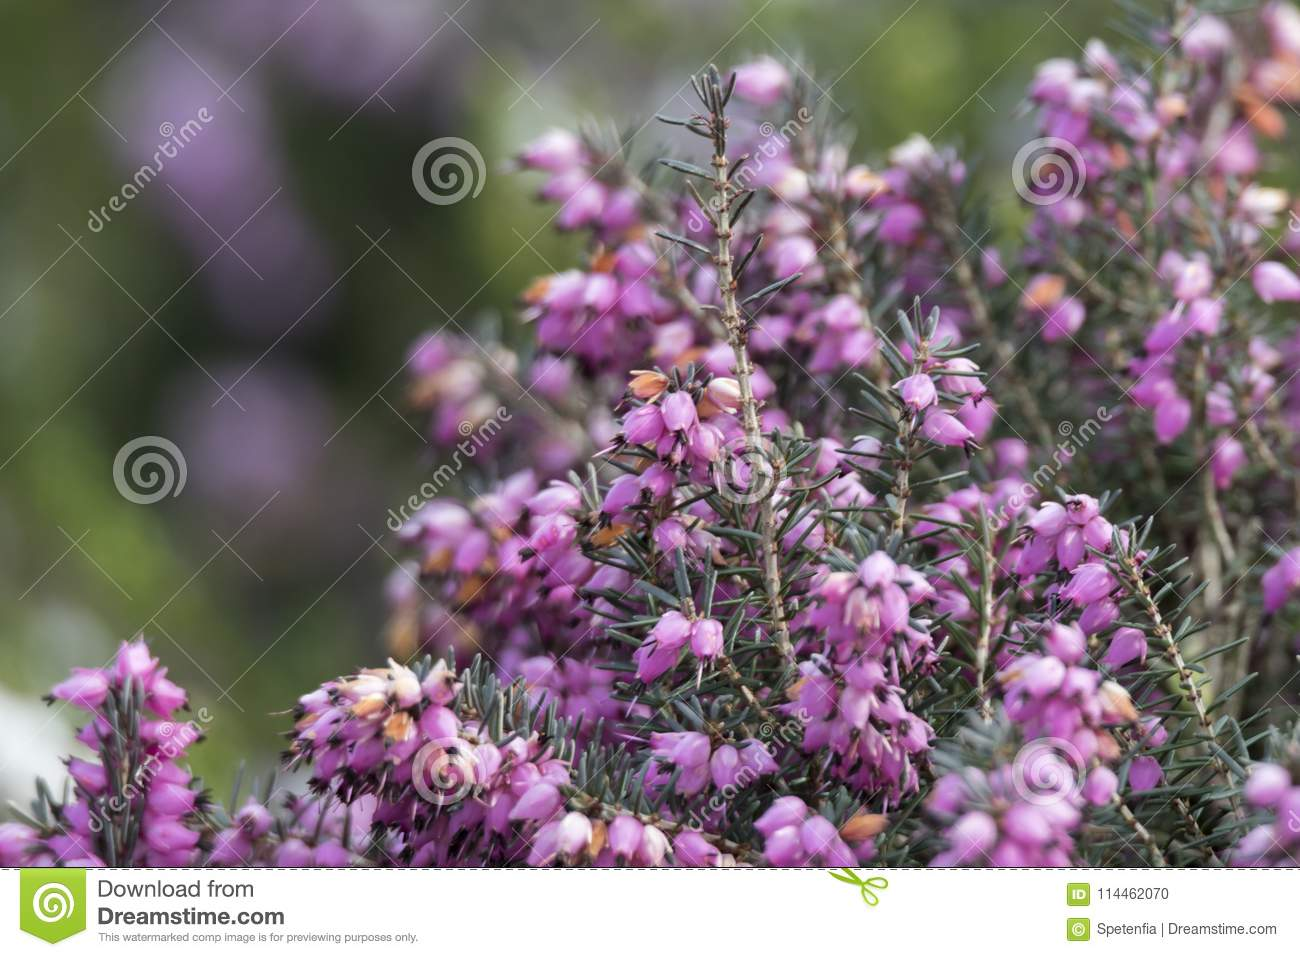 Heather flower in bloom stock photo image of plant 114462070 royalty free stock photo mightylinksfo